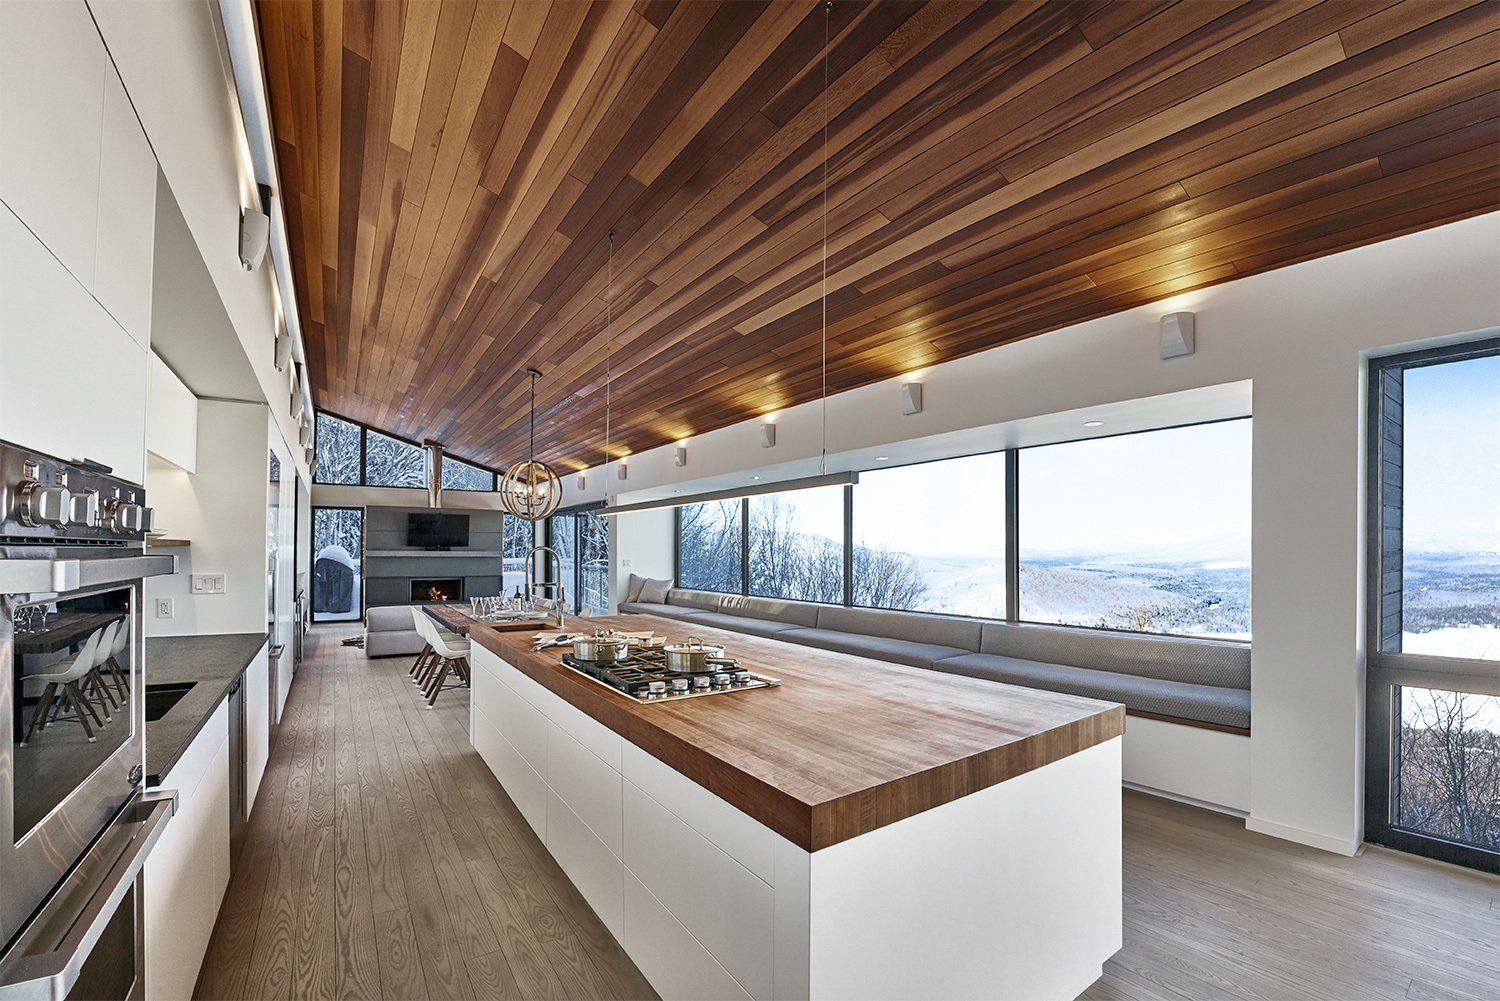 Kitchen, Medium Hardwood Floor, Ceiling Lighting, Wall Oven, Cooktops, Granite Counter, White Cabinet, Undermount Sink, Wood Counter, and Light Hardwood Floor View of kitchen and main bay window upon entry into primary living space.  Laurentian Ski Chalet by RobitailleCurtis